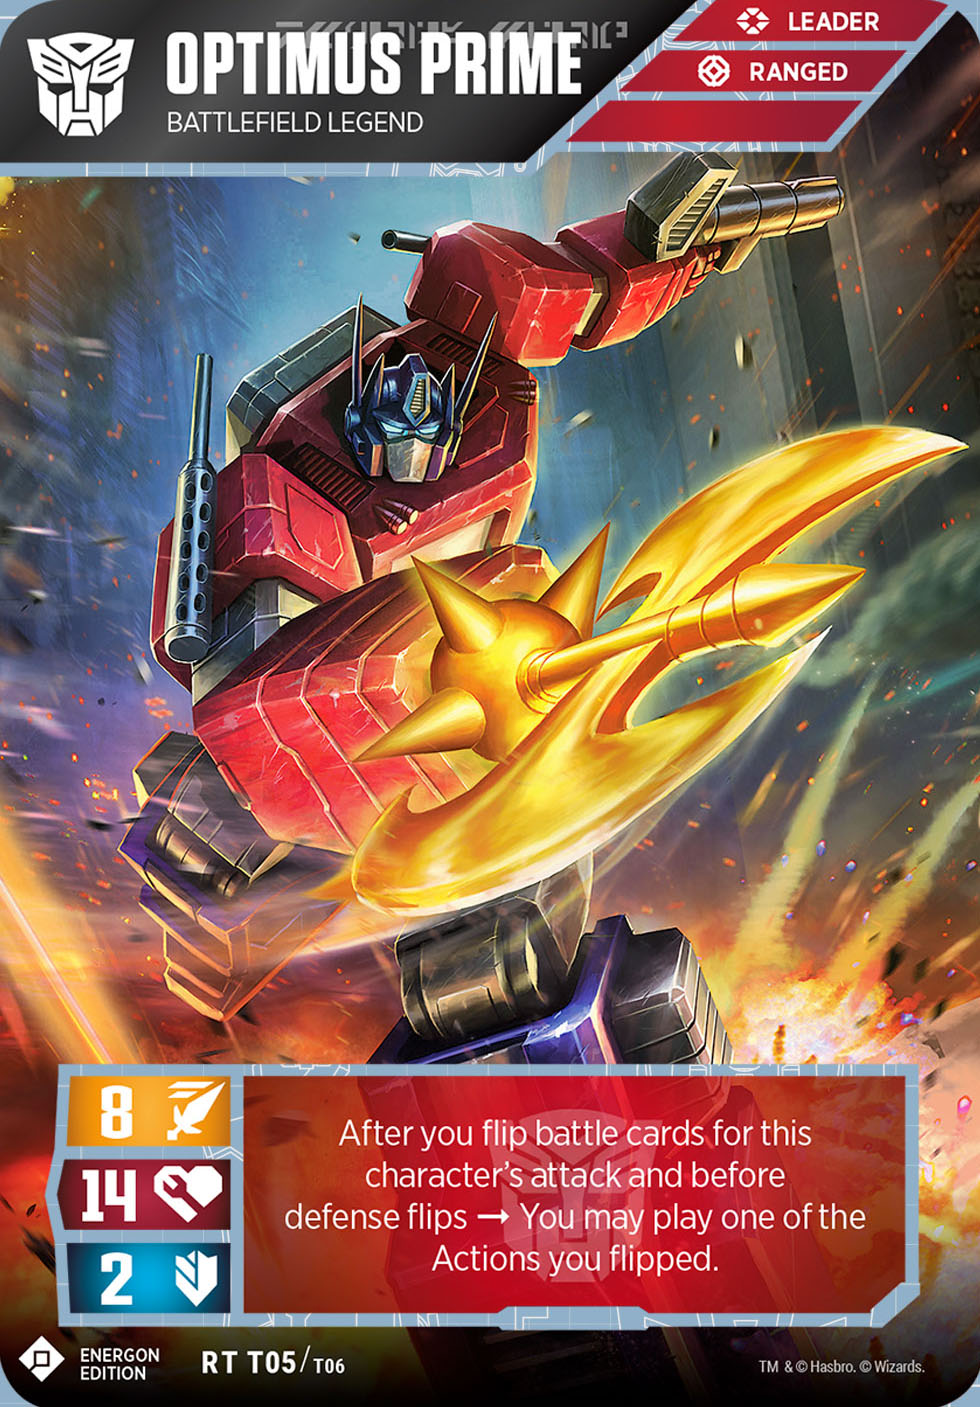 https://images.fortressmaximus.io/cards/ee1/character/optimus-prime-battlefield-legend-EE1-bot.jpg